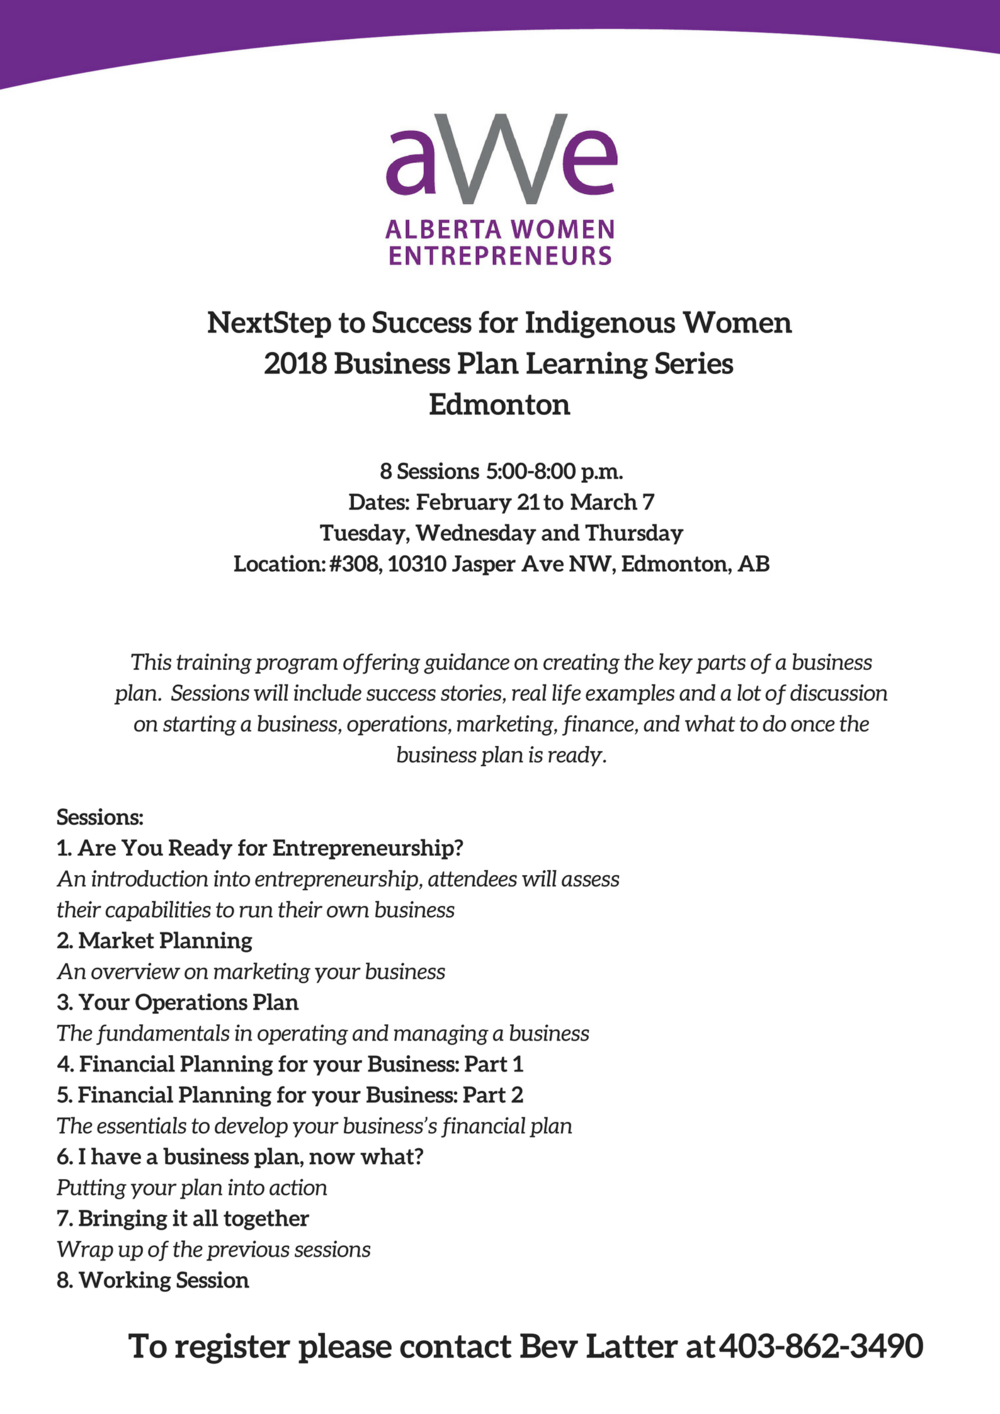 NextStep to Success for Indigenous Women2018 Business Plan Learning SeriesCalgary (1).png